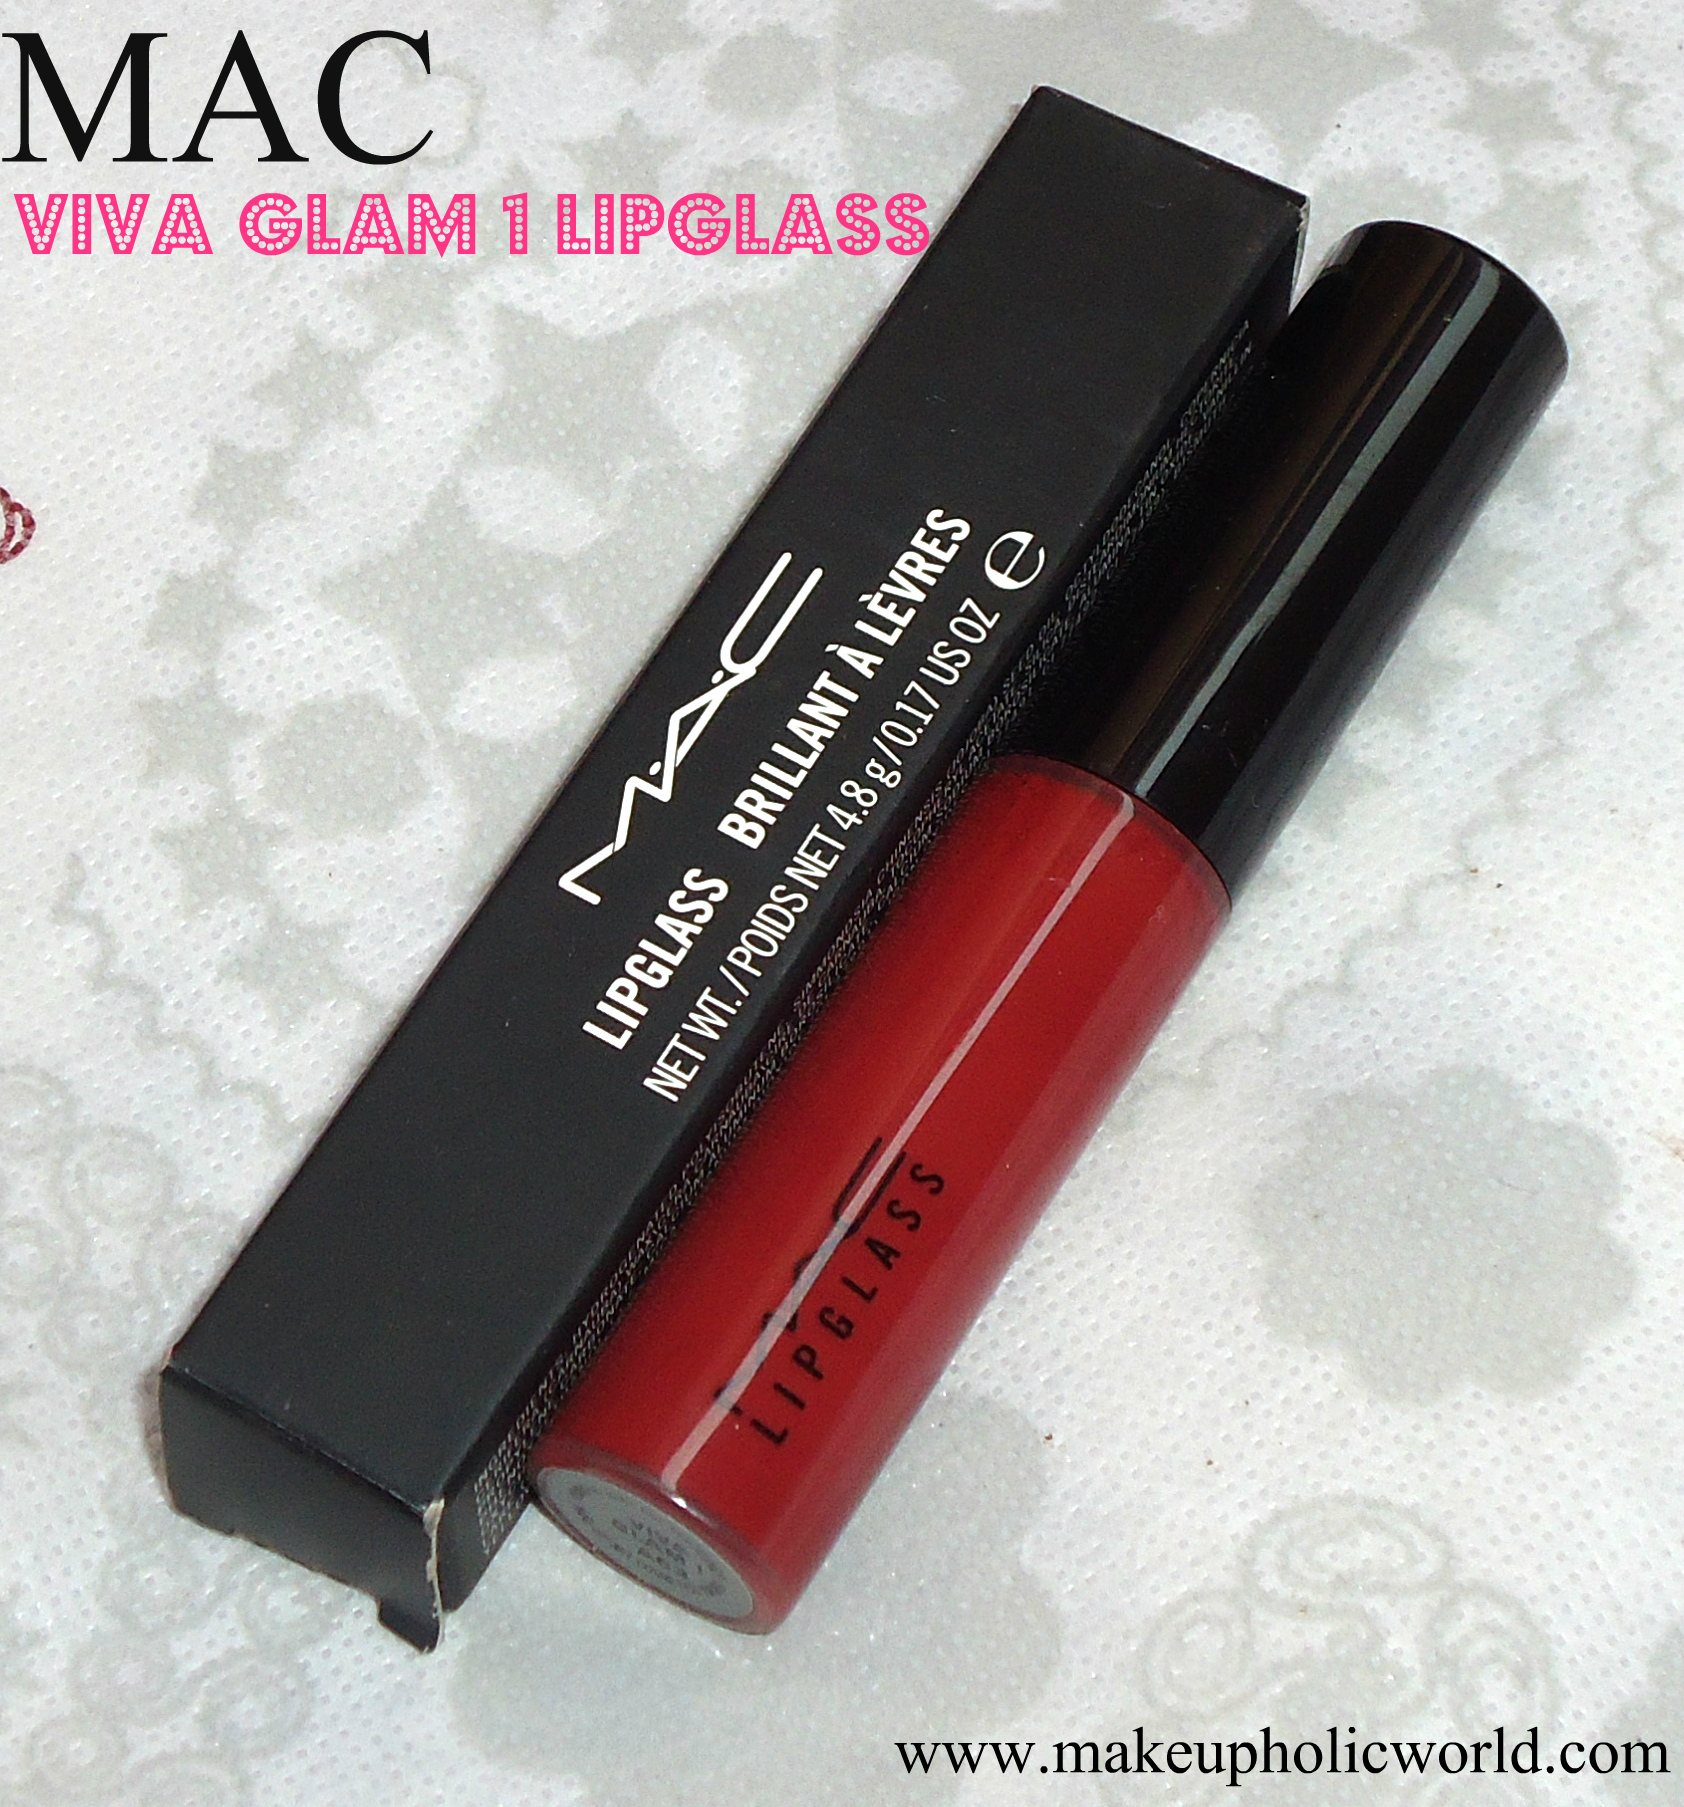 MAC Tinted Lipglass Viva Glam I review, swatches & FOTD